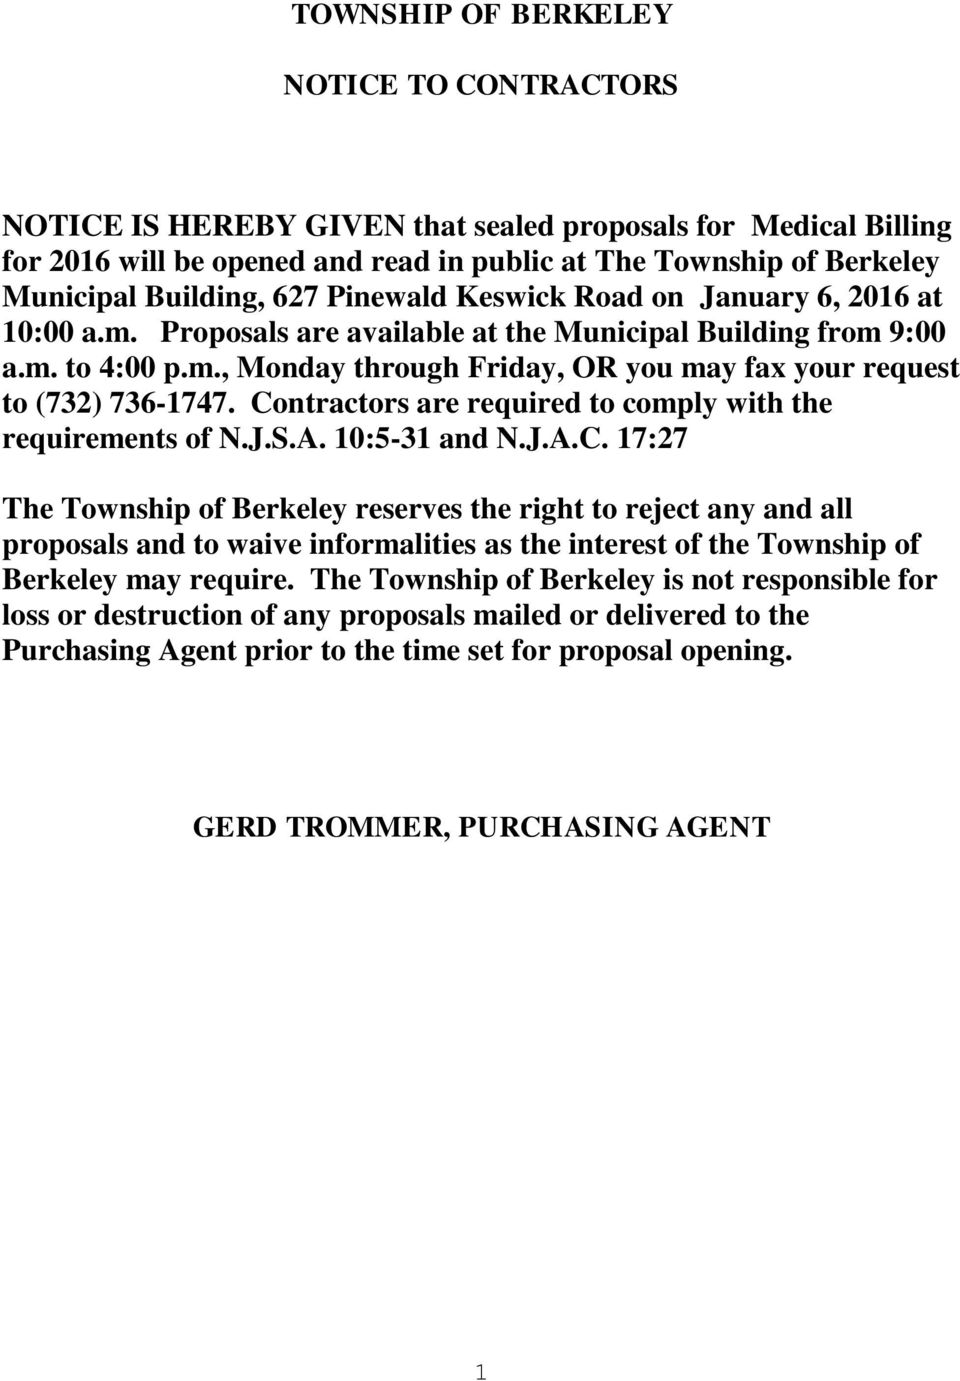 Contractors are required to comply with the requirements of N.J.S.A. 10:5-31 and N.J.A.C. 17:27 The Township of Berkeley reserves the right to reject any and all proposals and to waive informalities as the interest of the Township of Berkeley may require.